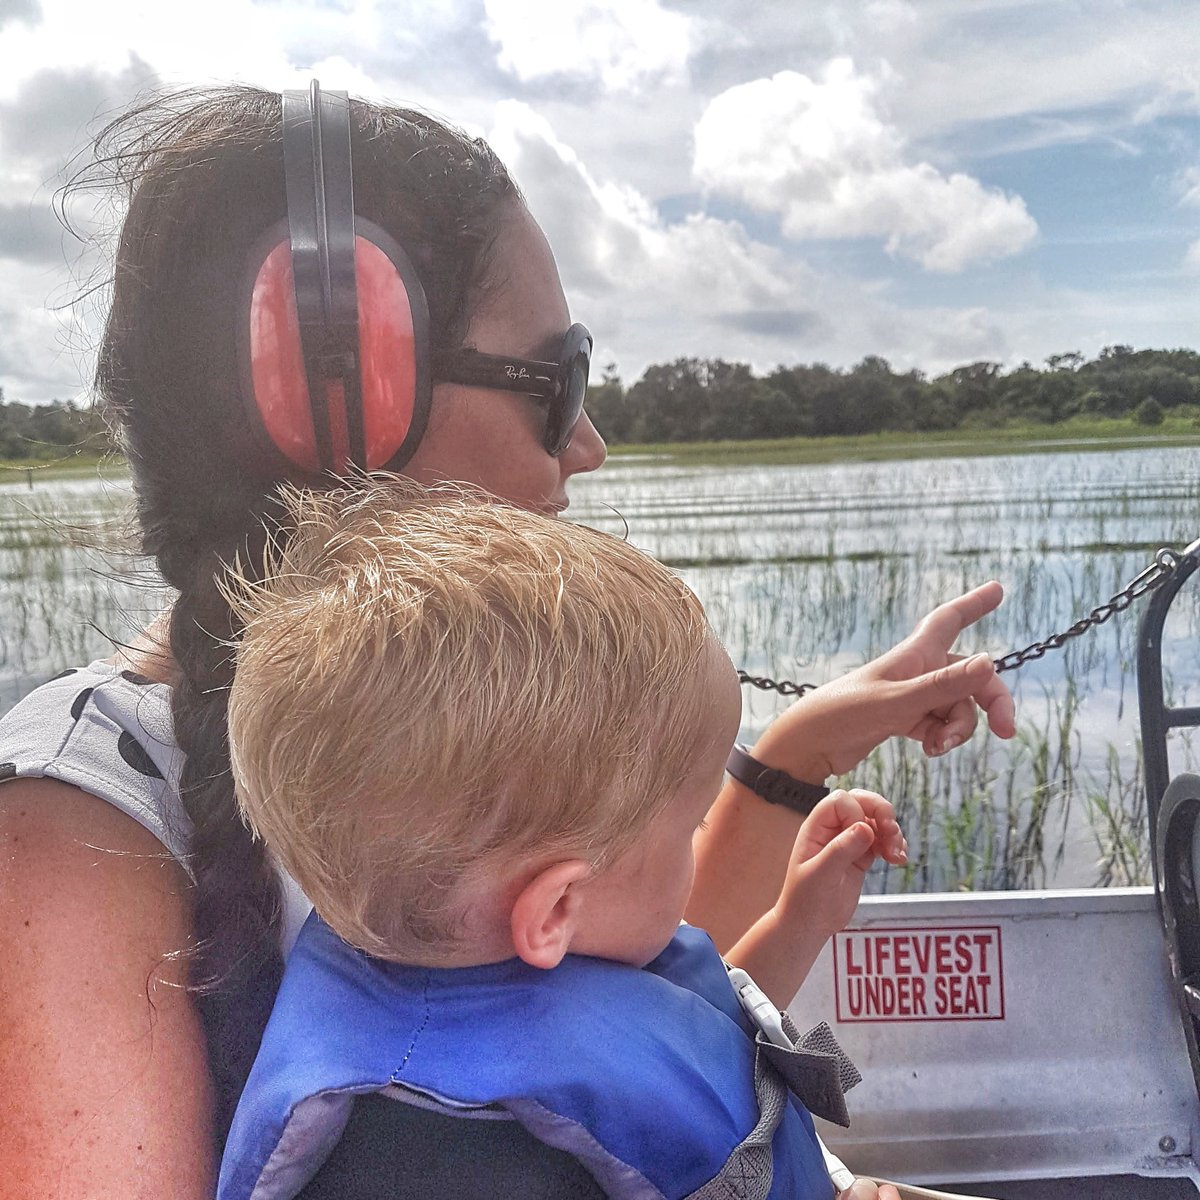 Things to do in #Orlando away from #Disney  visit #BoggyCreek Airboats get out on the water and spot some gators! RT